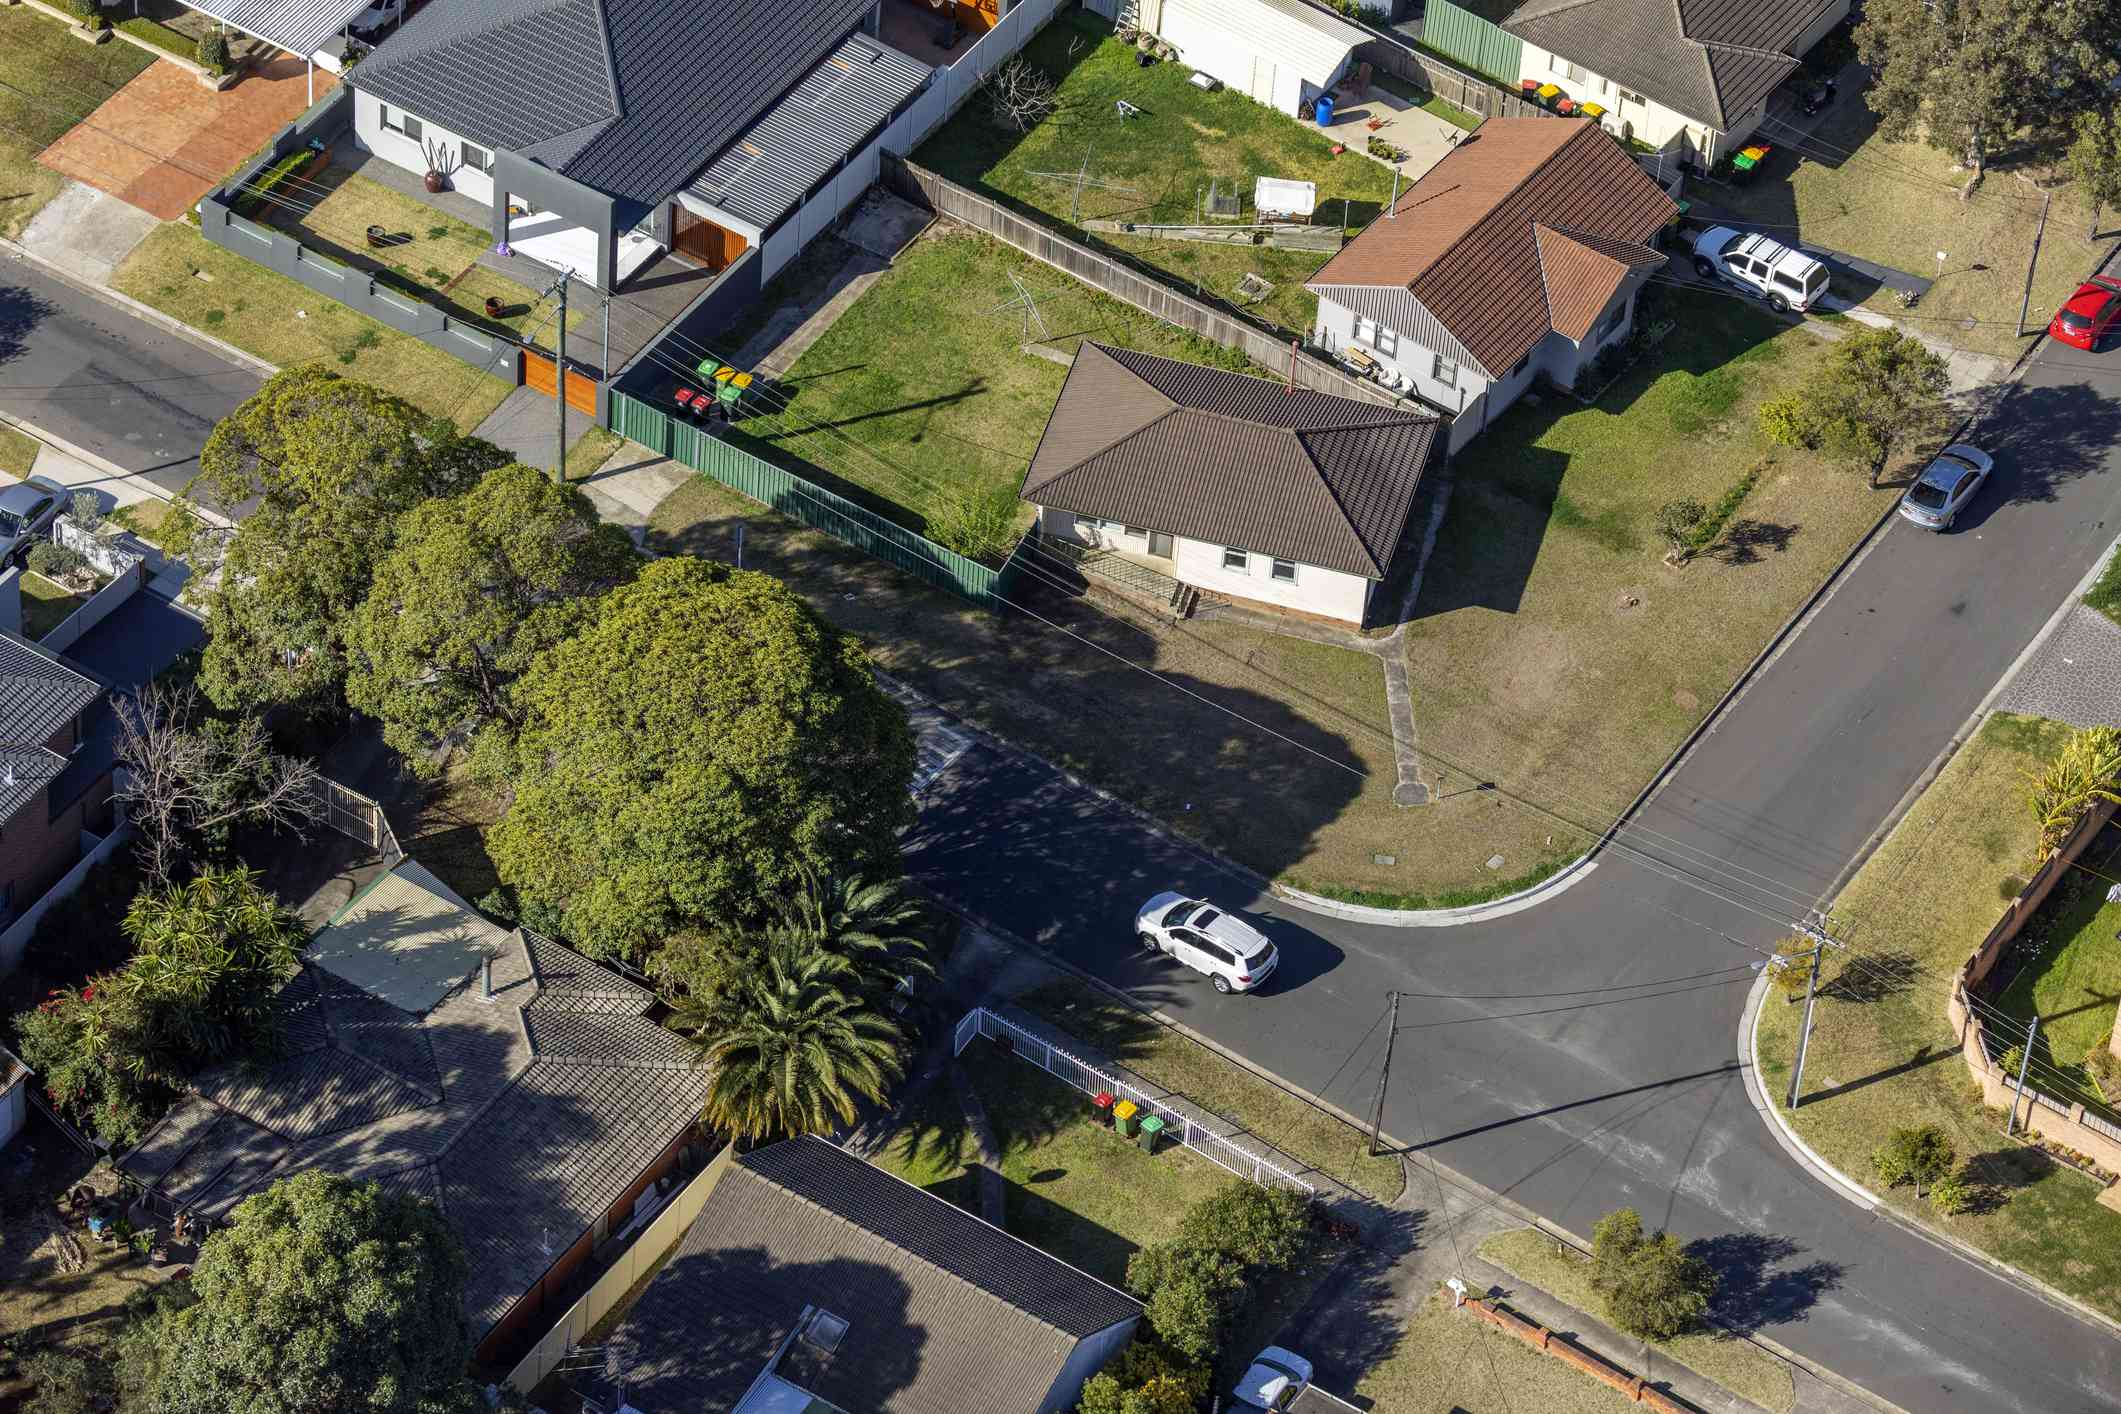 aerial view of a T-intersection in a residential neighborhood